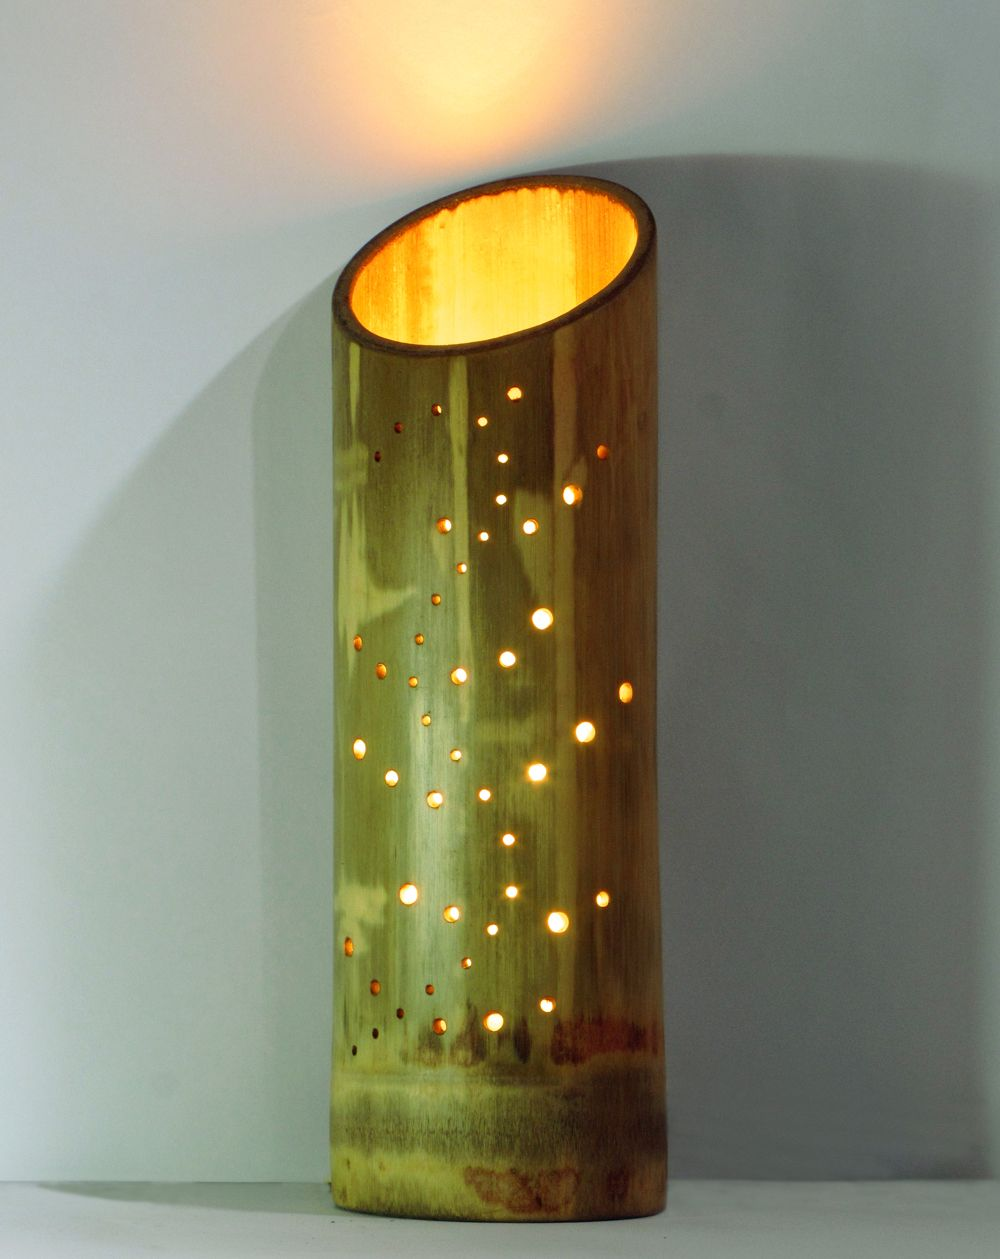 Feather Design Inspired Bamboo Lamp. @Bamboozledesign Www.etsy.com/shop/